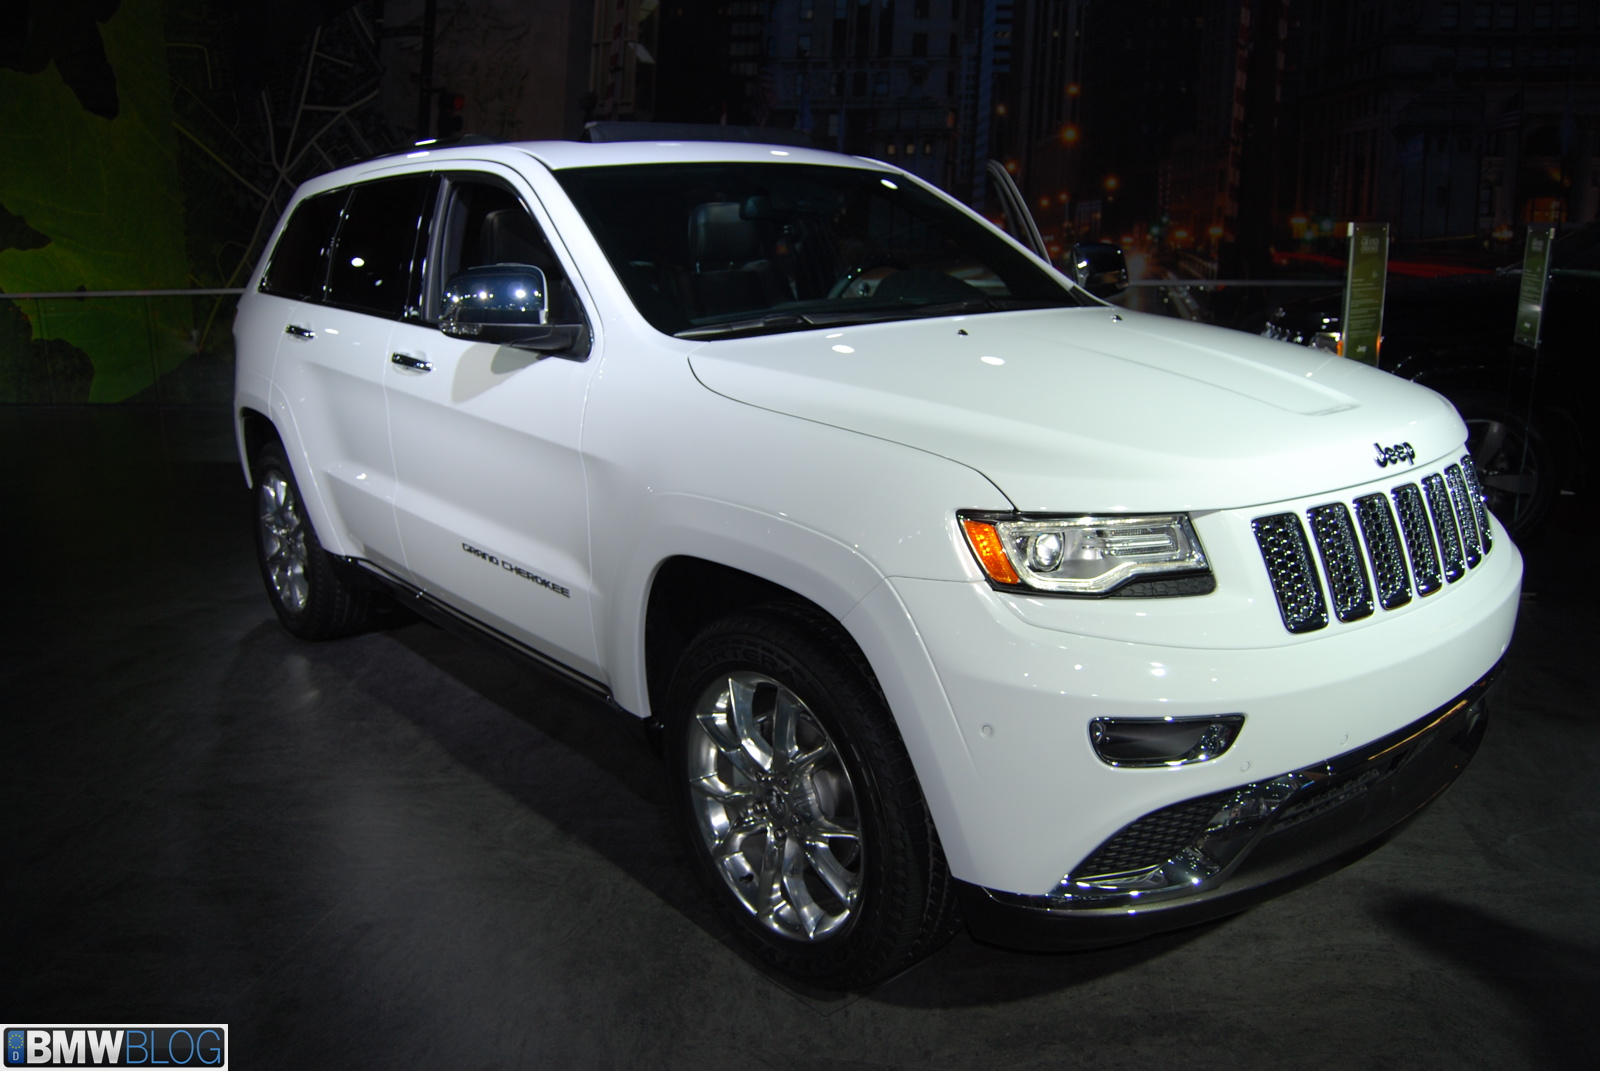 2014 Jeep Grand Cherokee >> 2014 JEEP GRAND CHEROKEE - Image #12